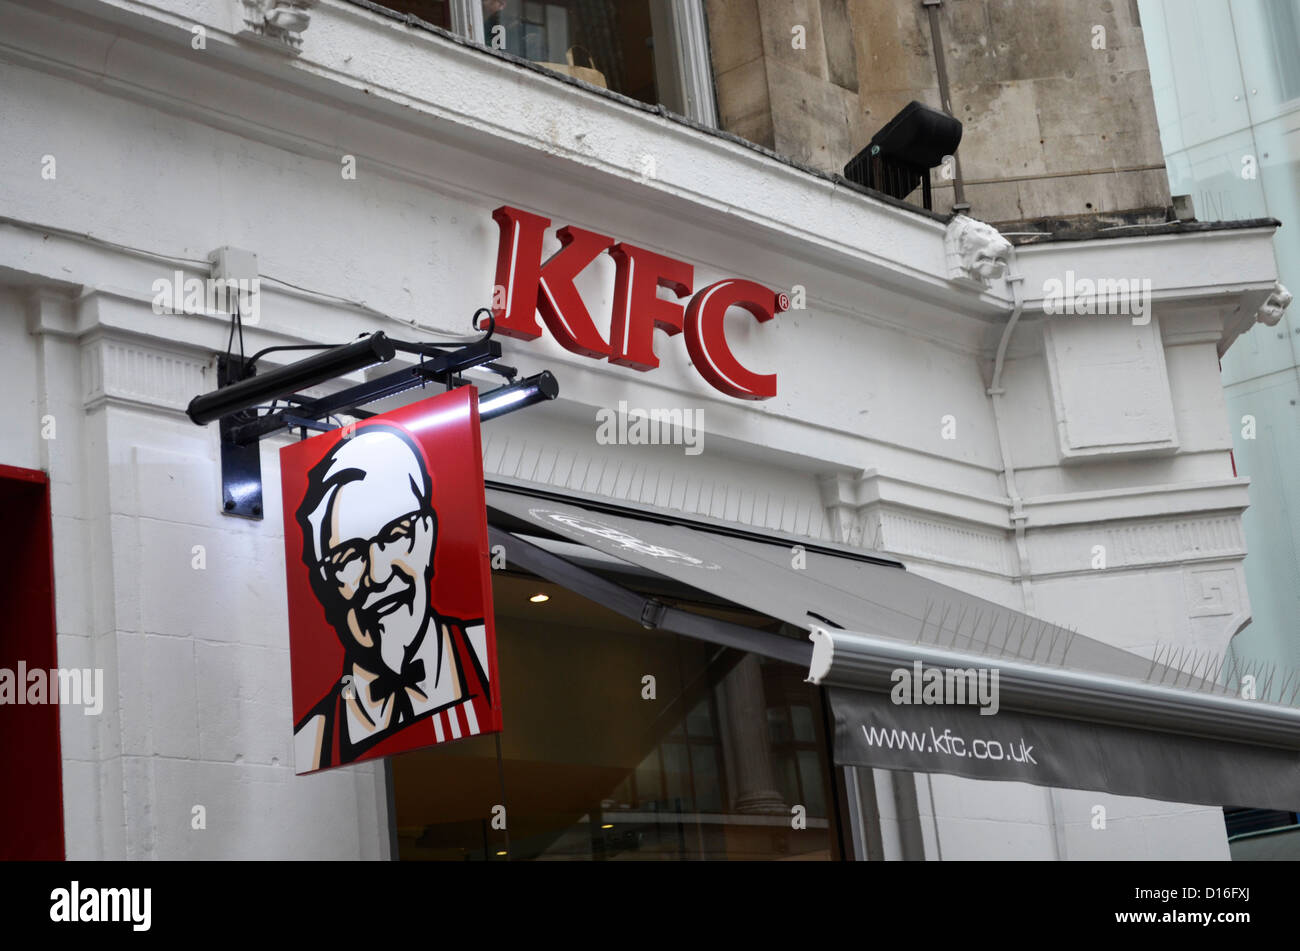 KFC front sign - Stock Image